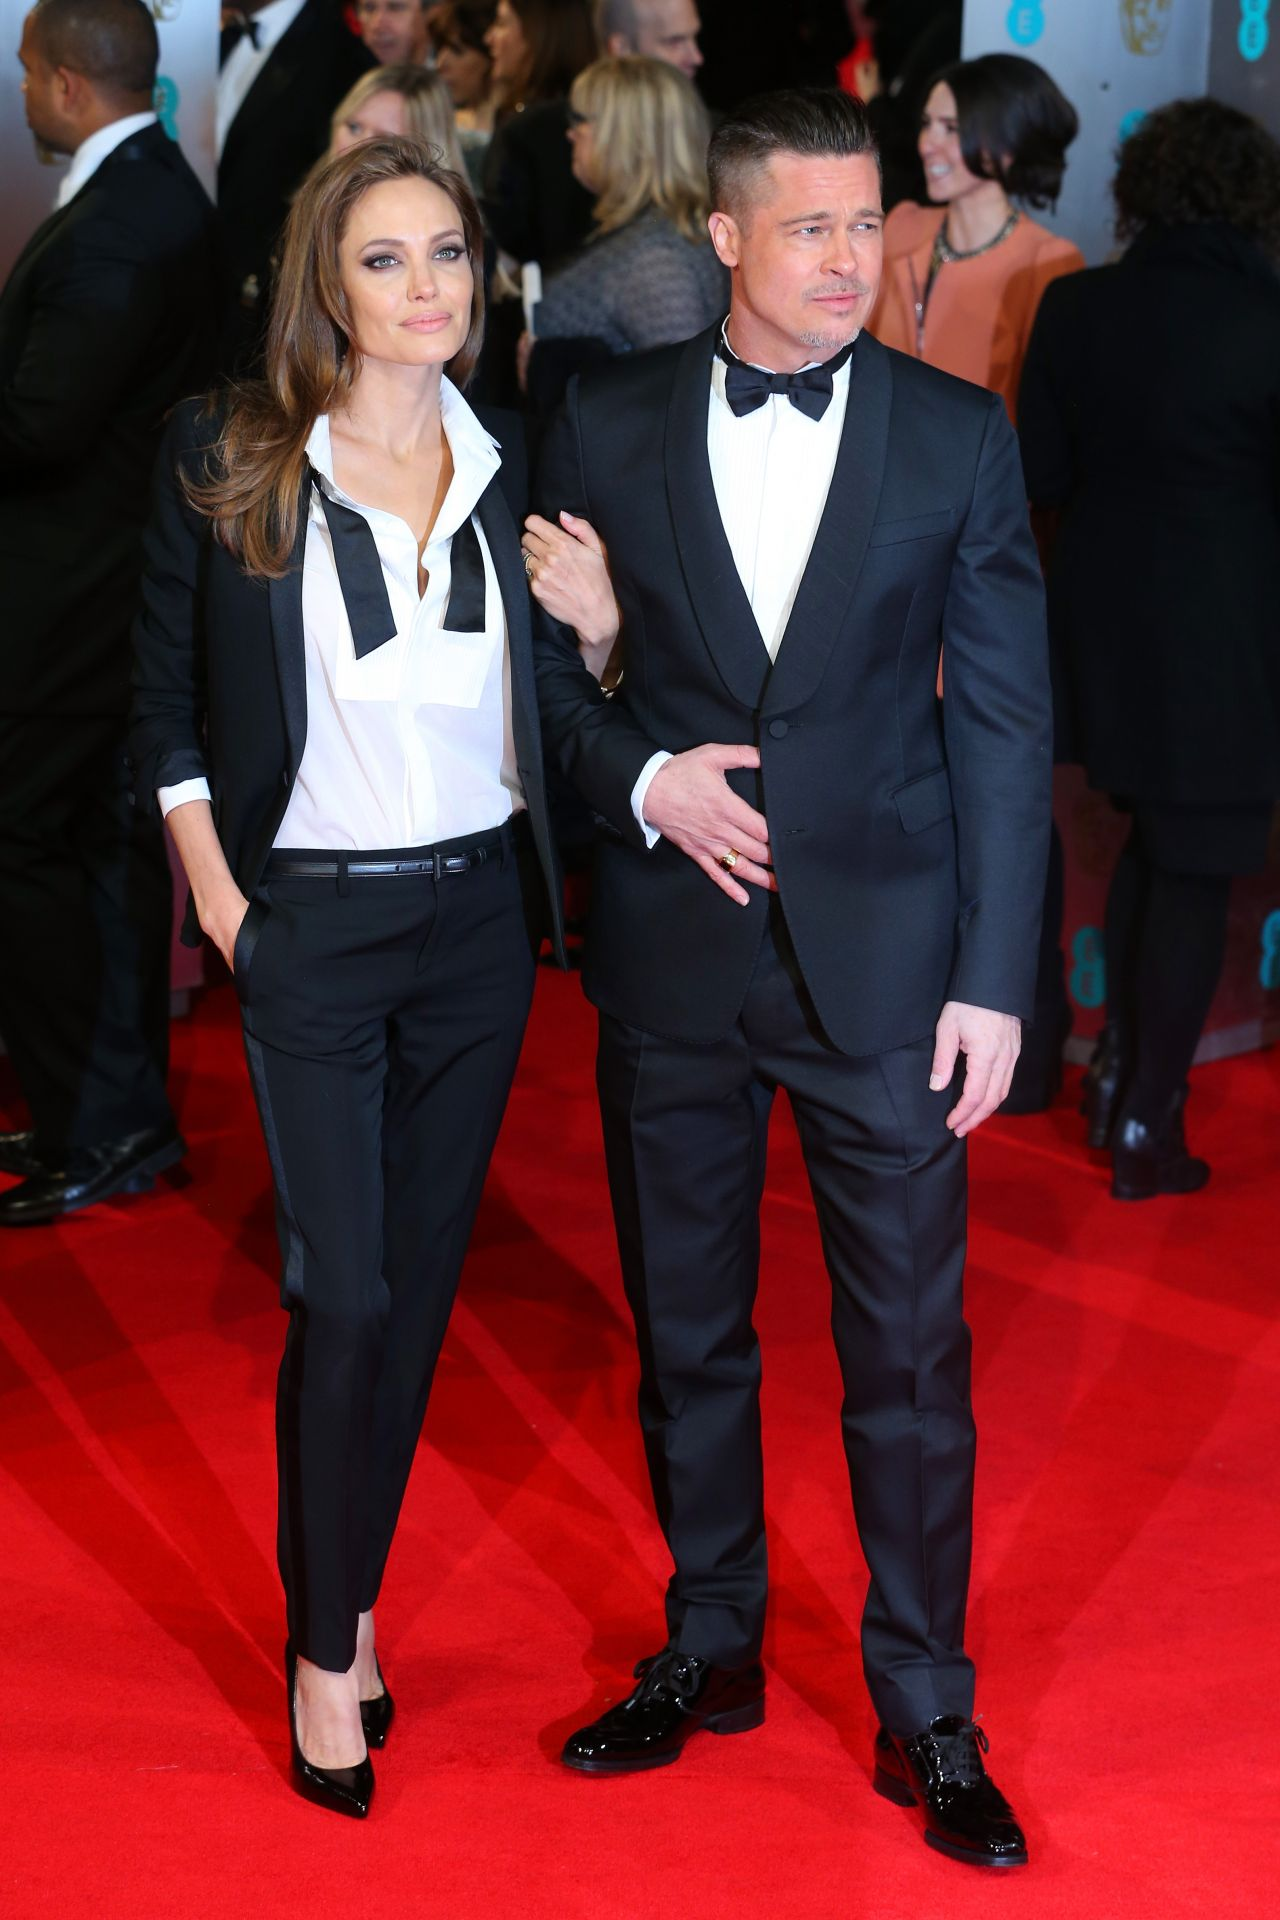 Angelina Jolie In Saint Laurent & Brad Pitt in Valentino - 2014 BAFTA Awards Red Carpet